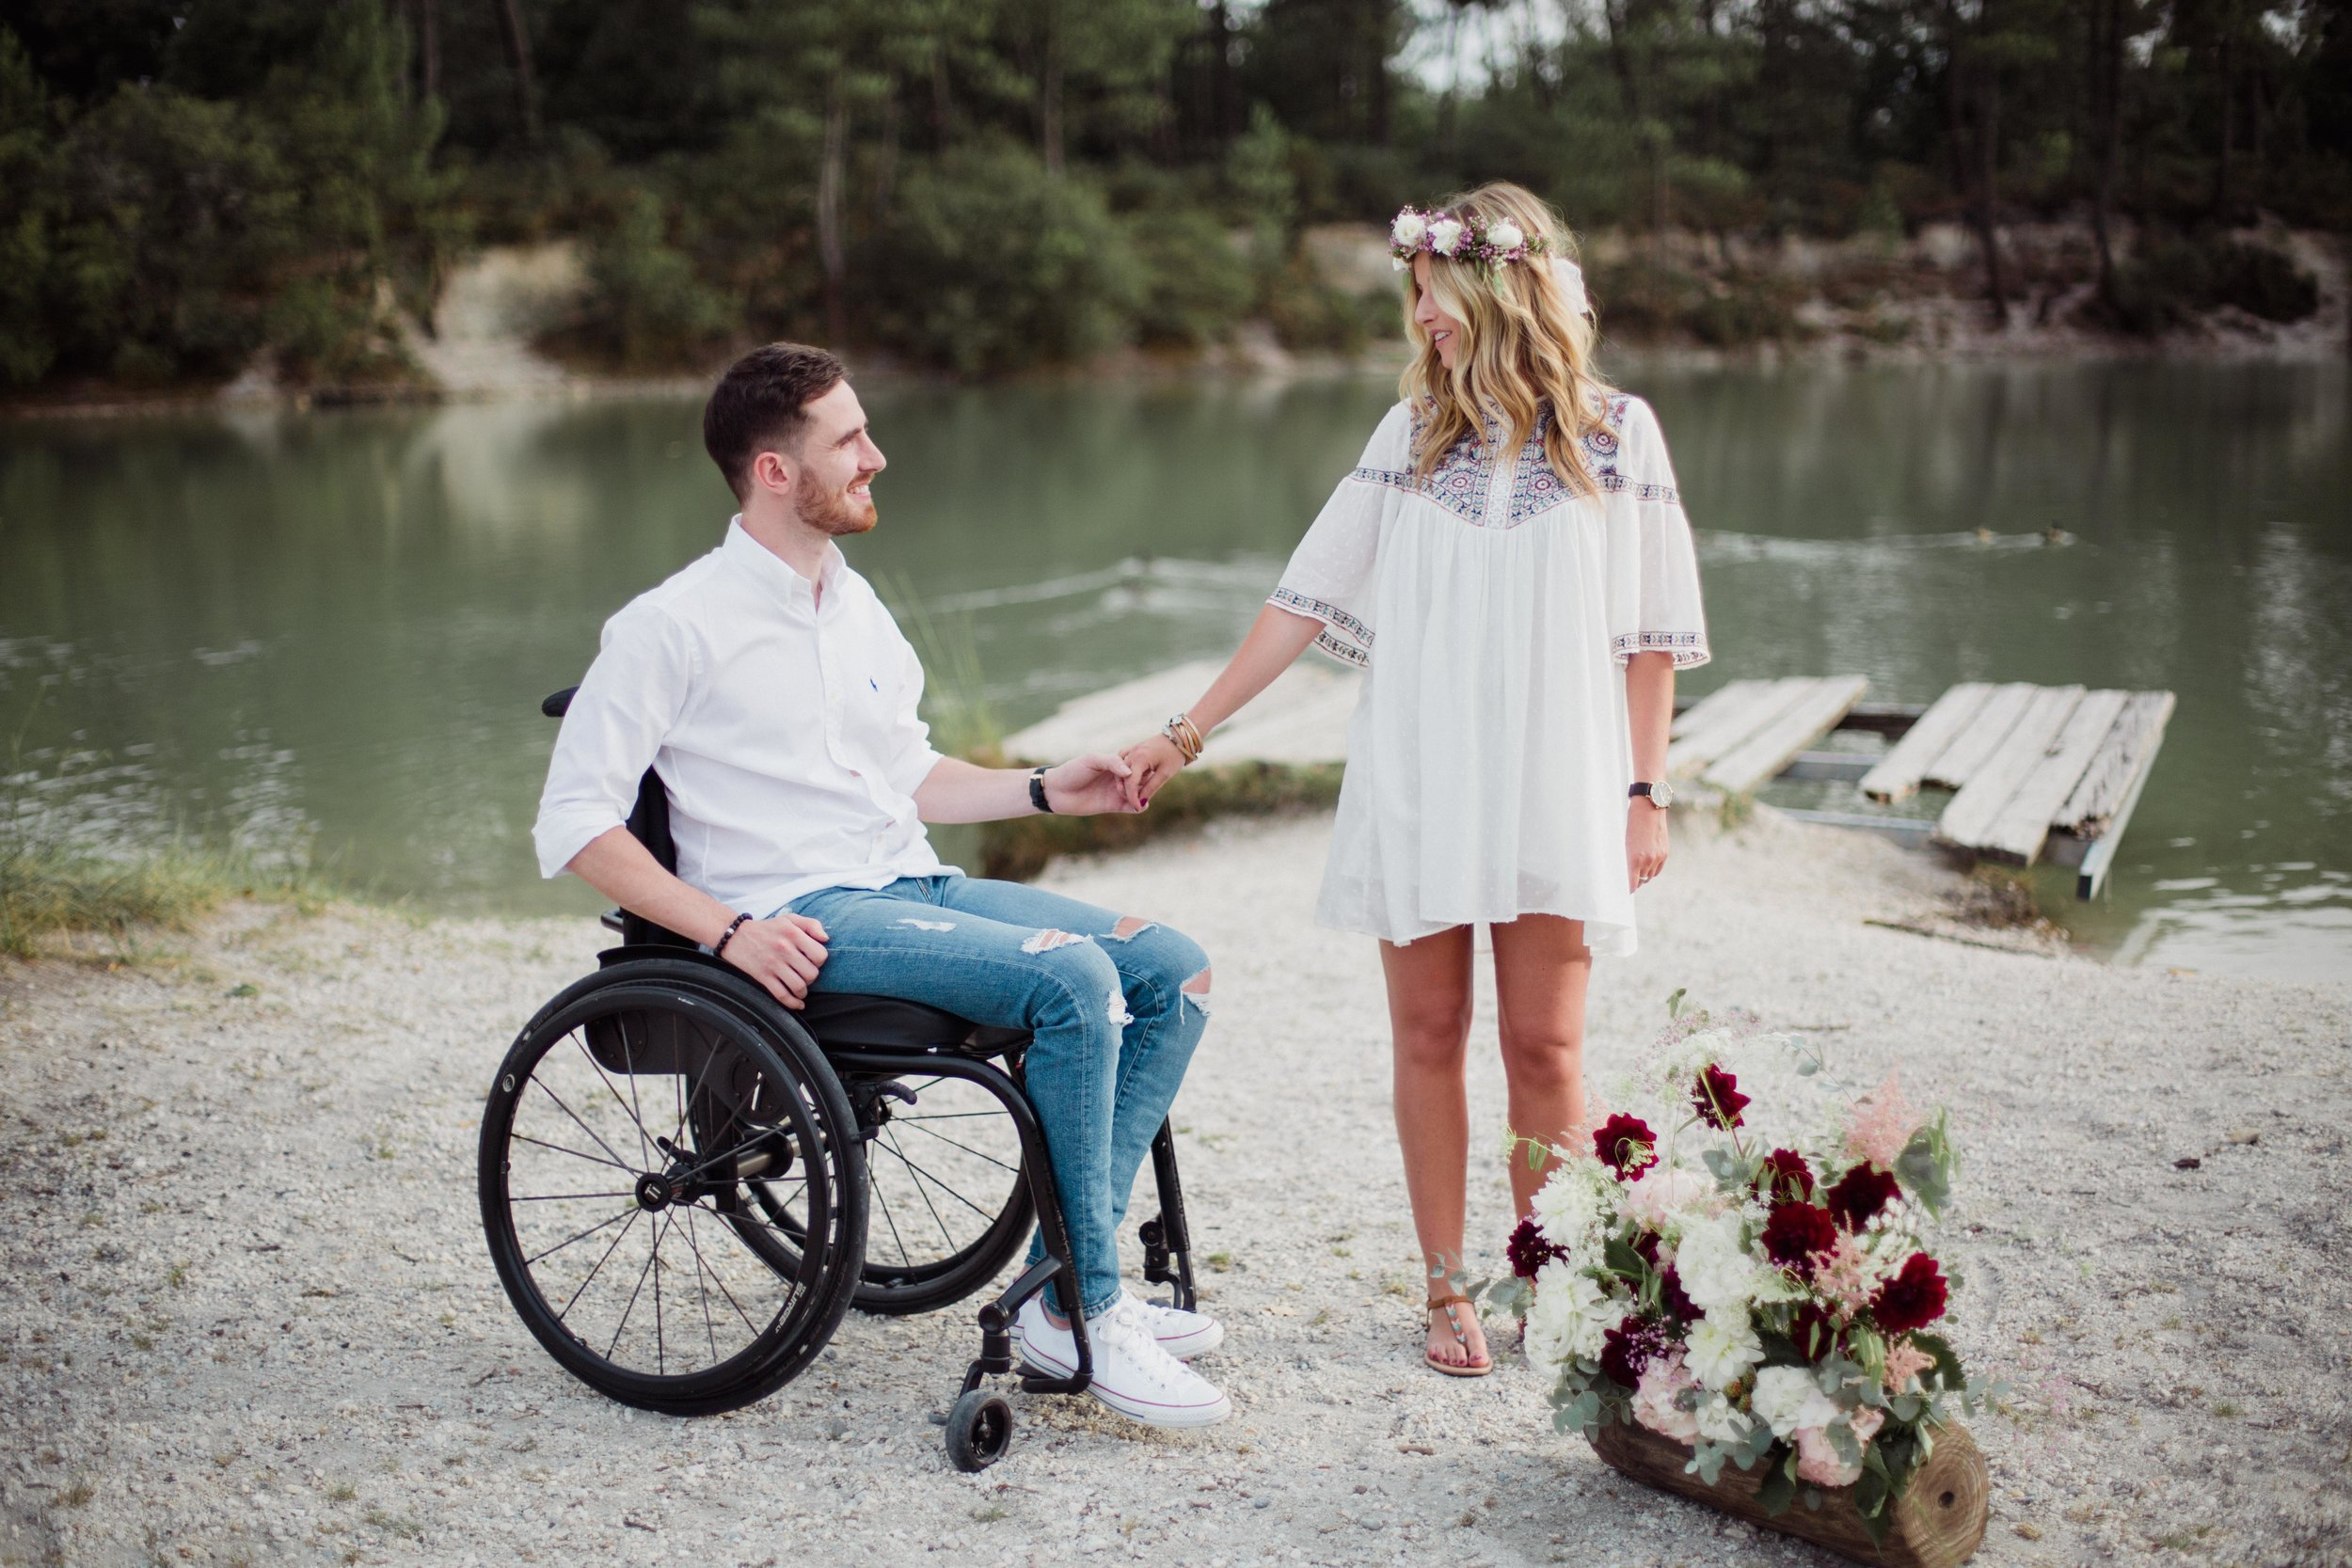 seance-couple-engagement-handicape-fauteuil-roulant-PaulineMaroussiaP-photographe-bordeaux-centre-lac-bleu-leognan